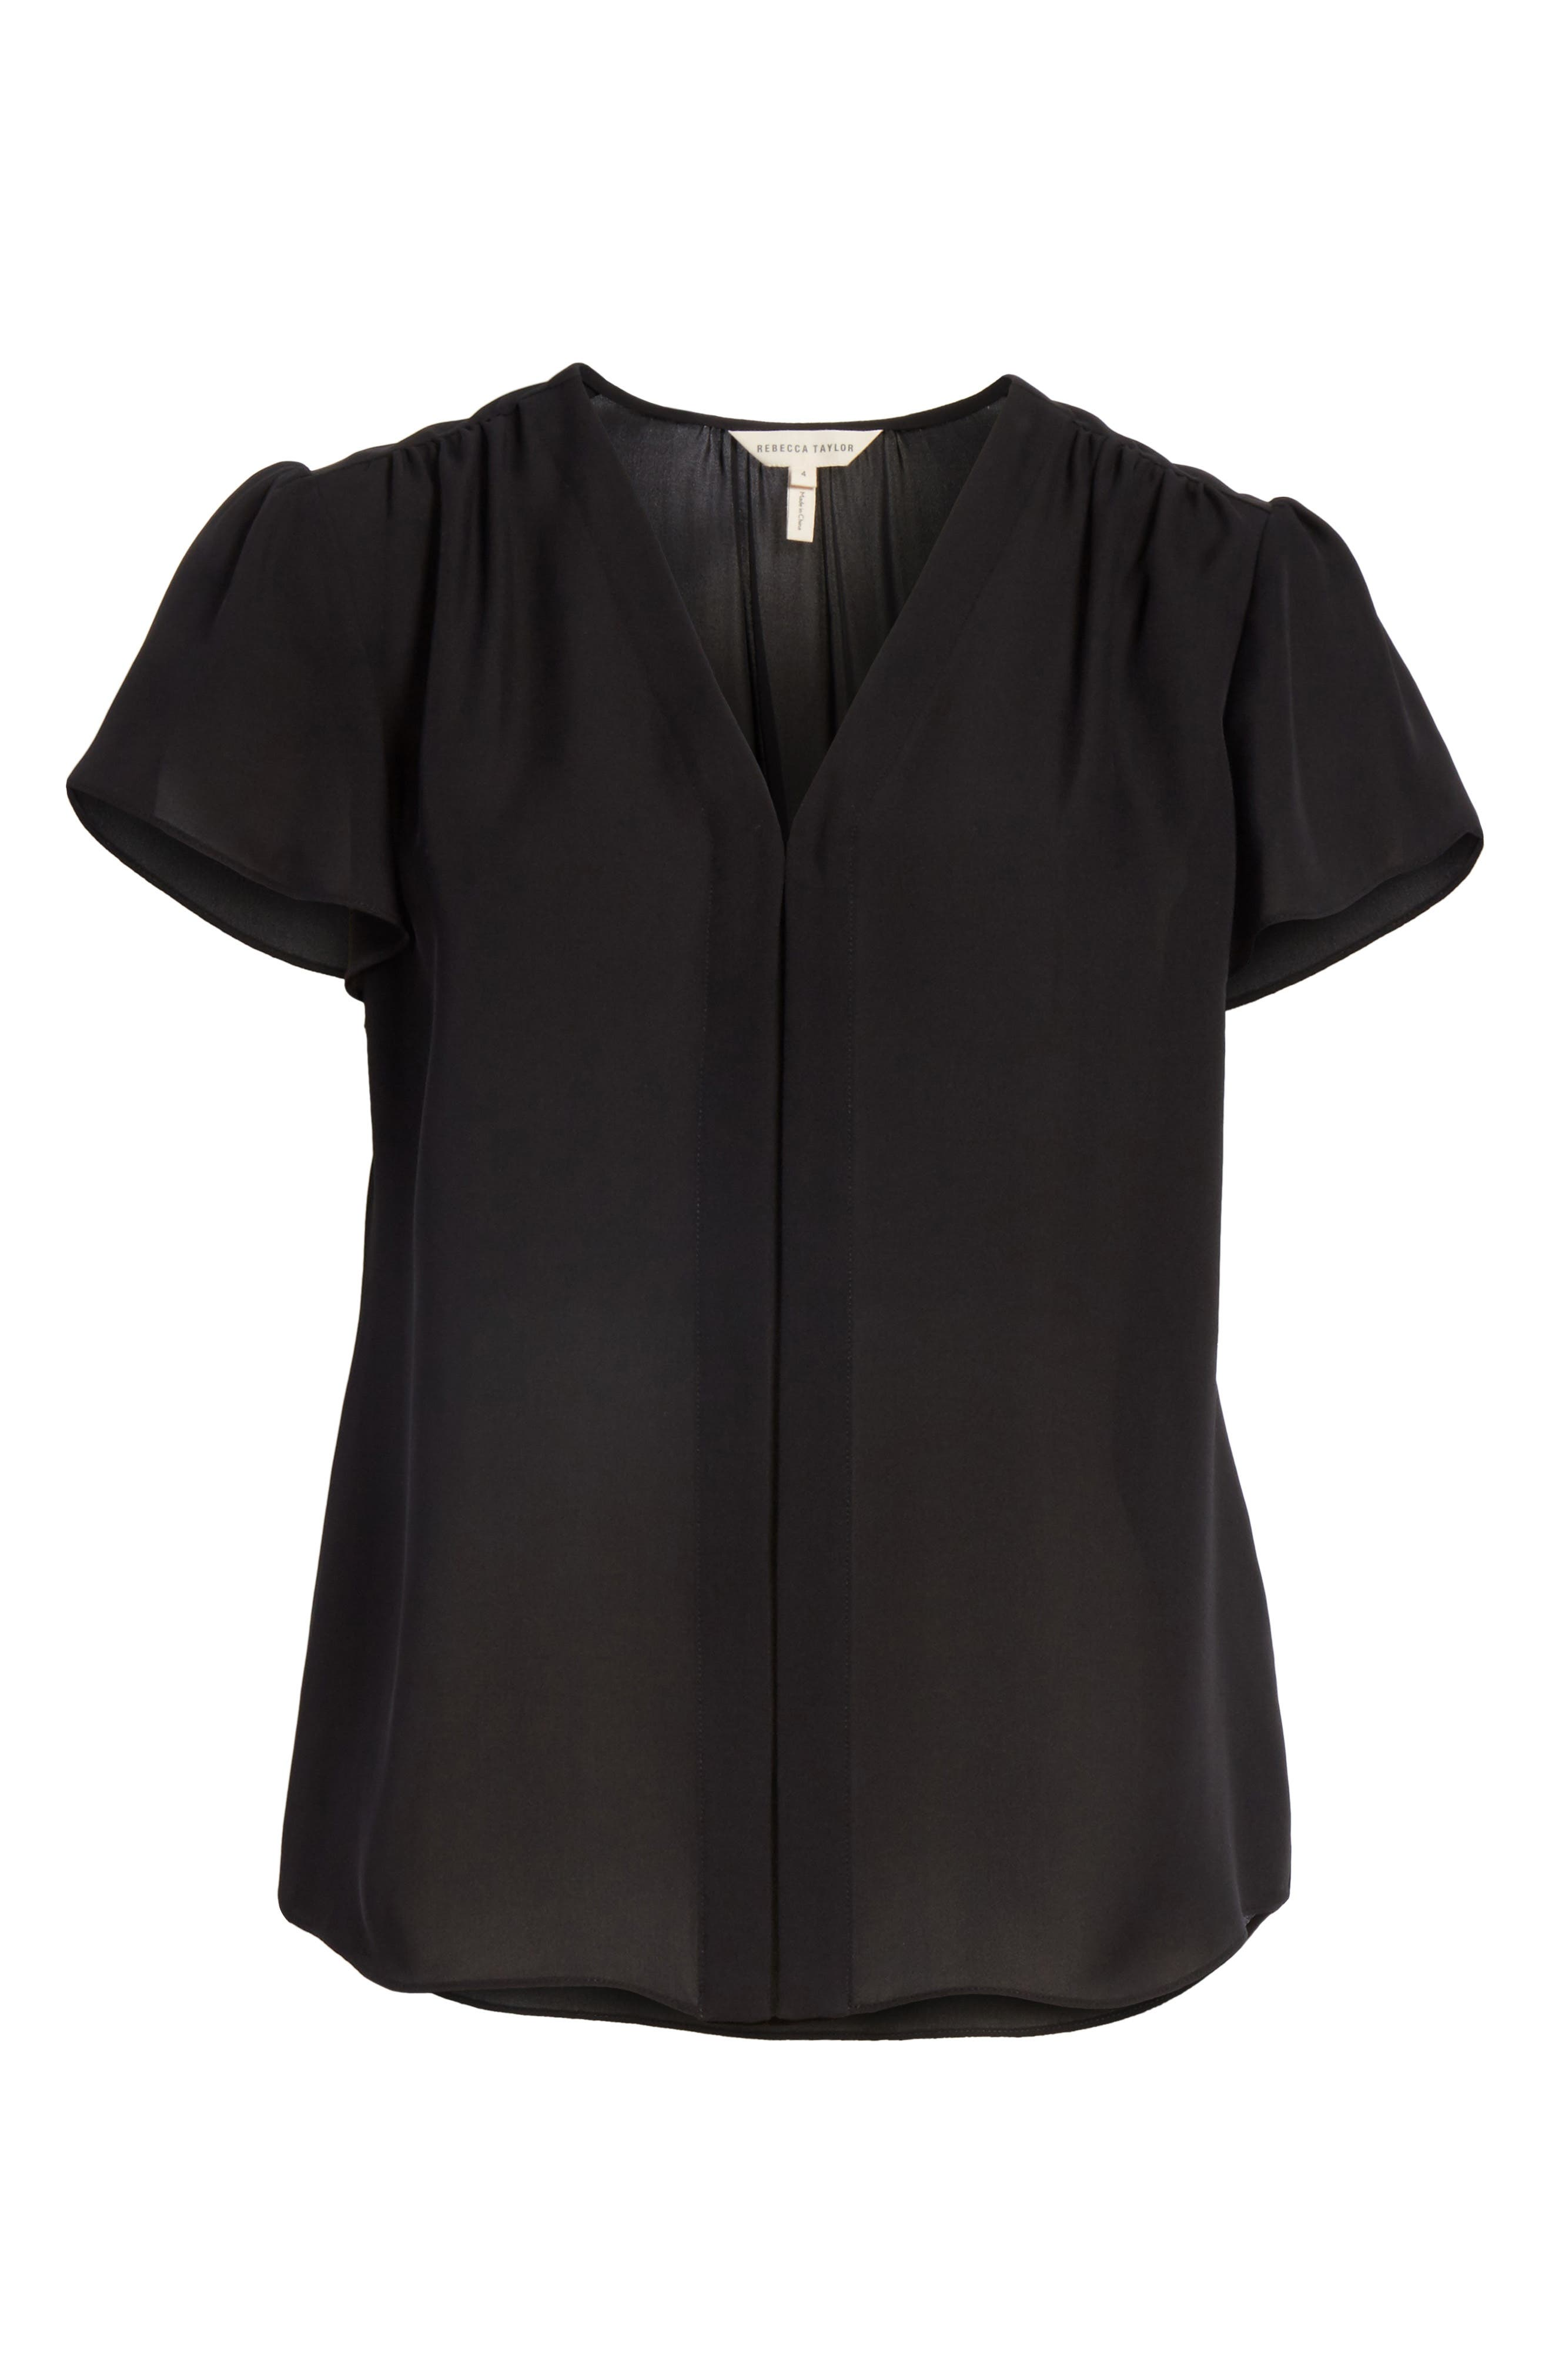 Celina Silk Top,                             Alternate thumbnail 6, color,                             BLACK